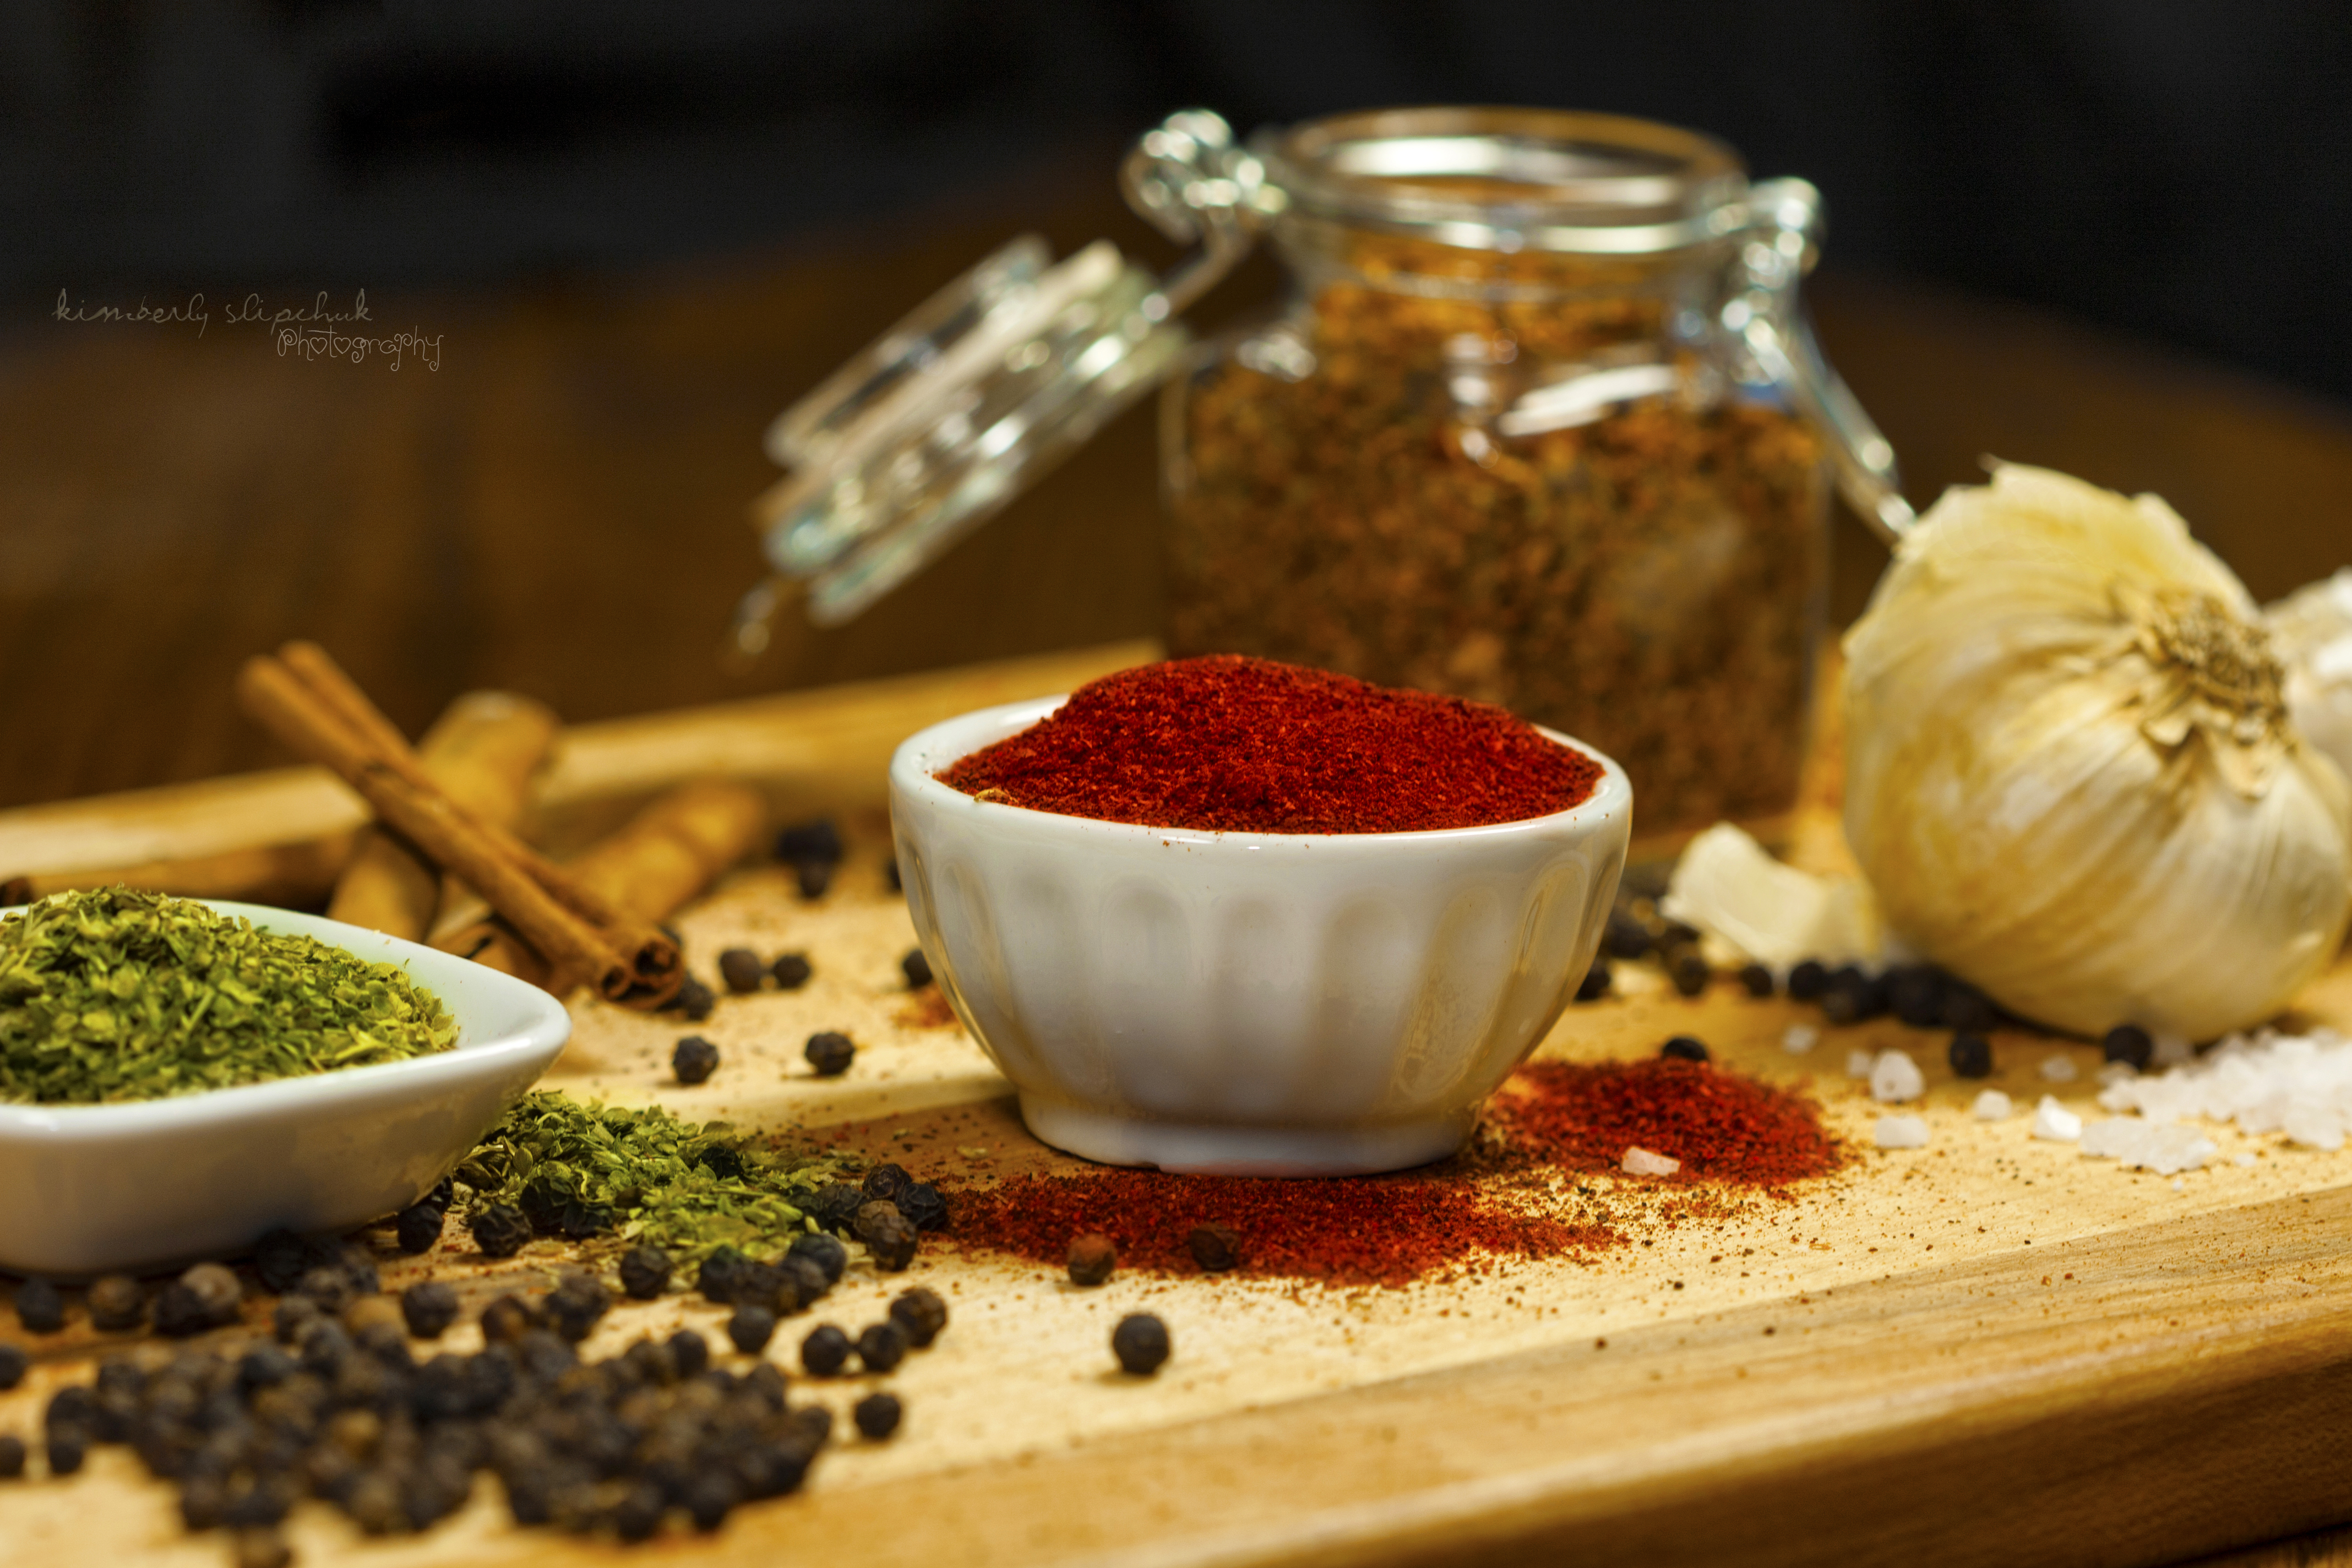 Colorful Food Wallpaper Free Download: Herbs And Spices 4k Ultra HD Wallpaper And Background